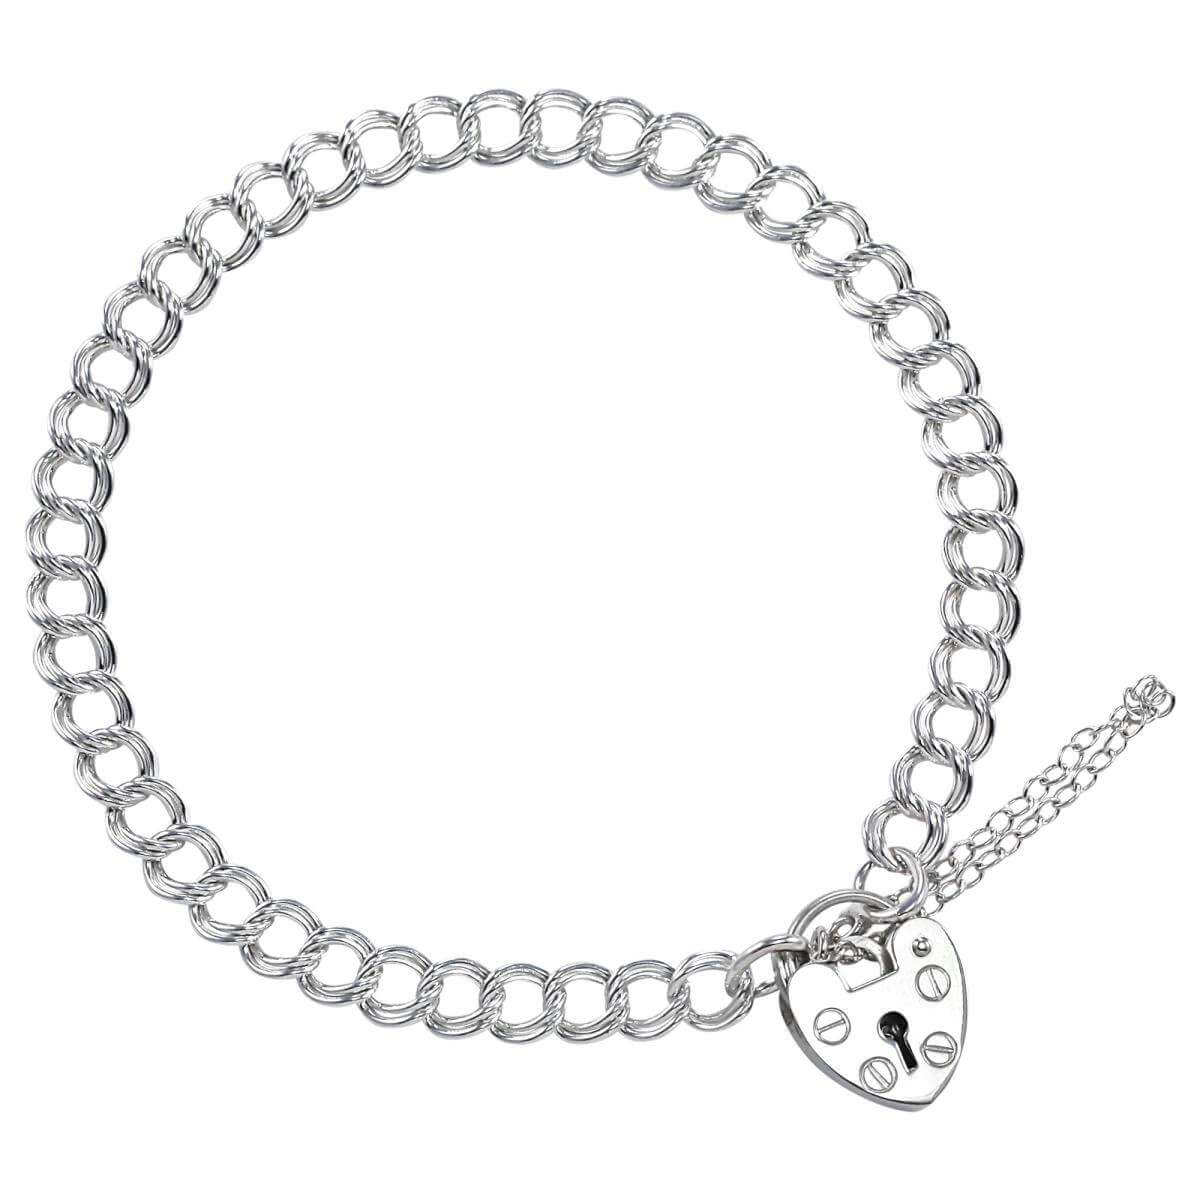 Sterling Silver Double Curb Charm Bracelet